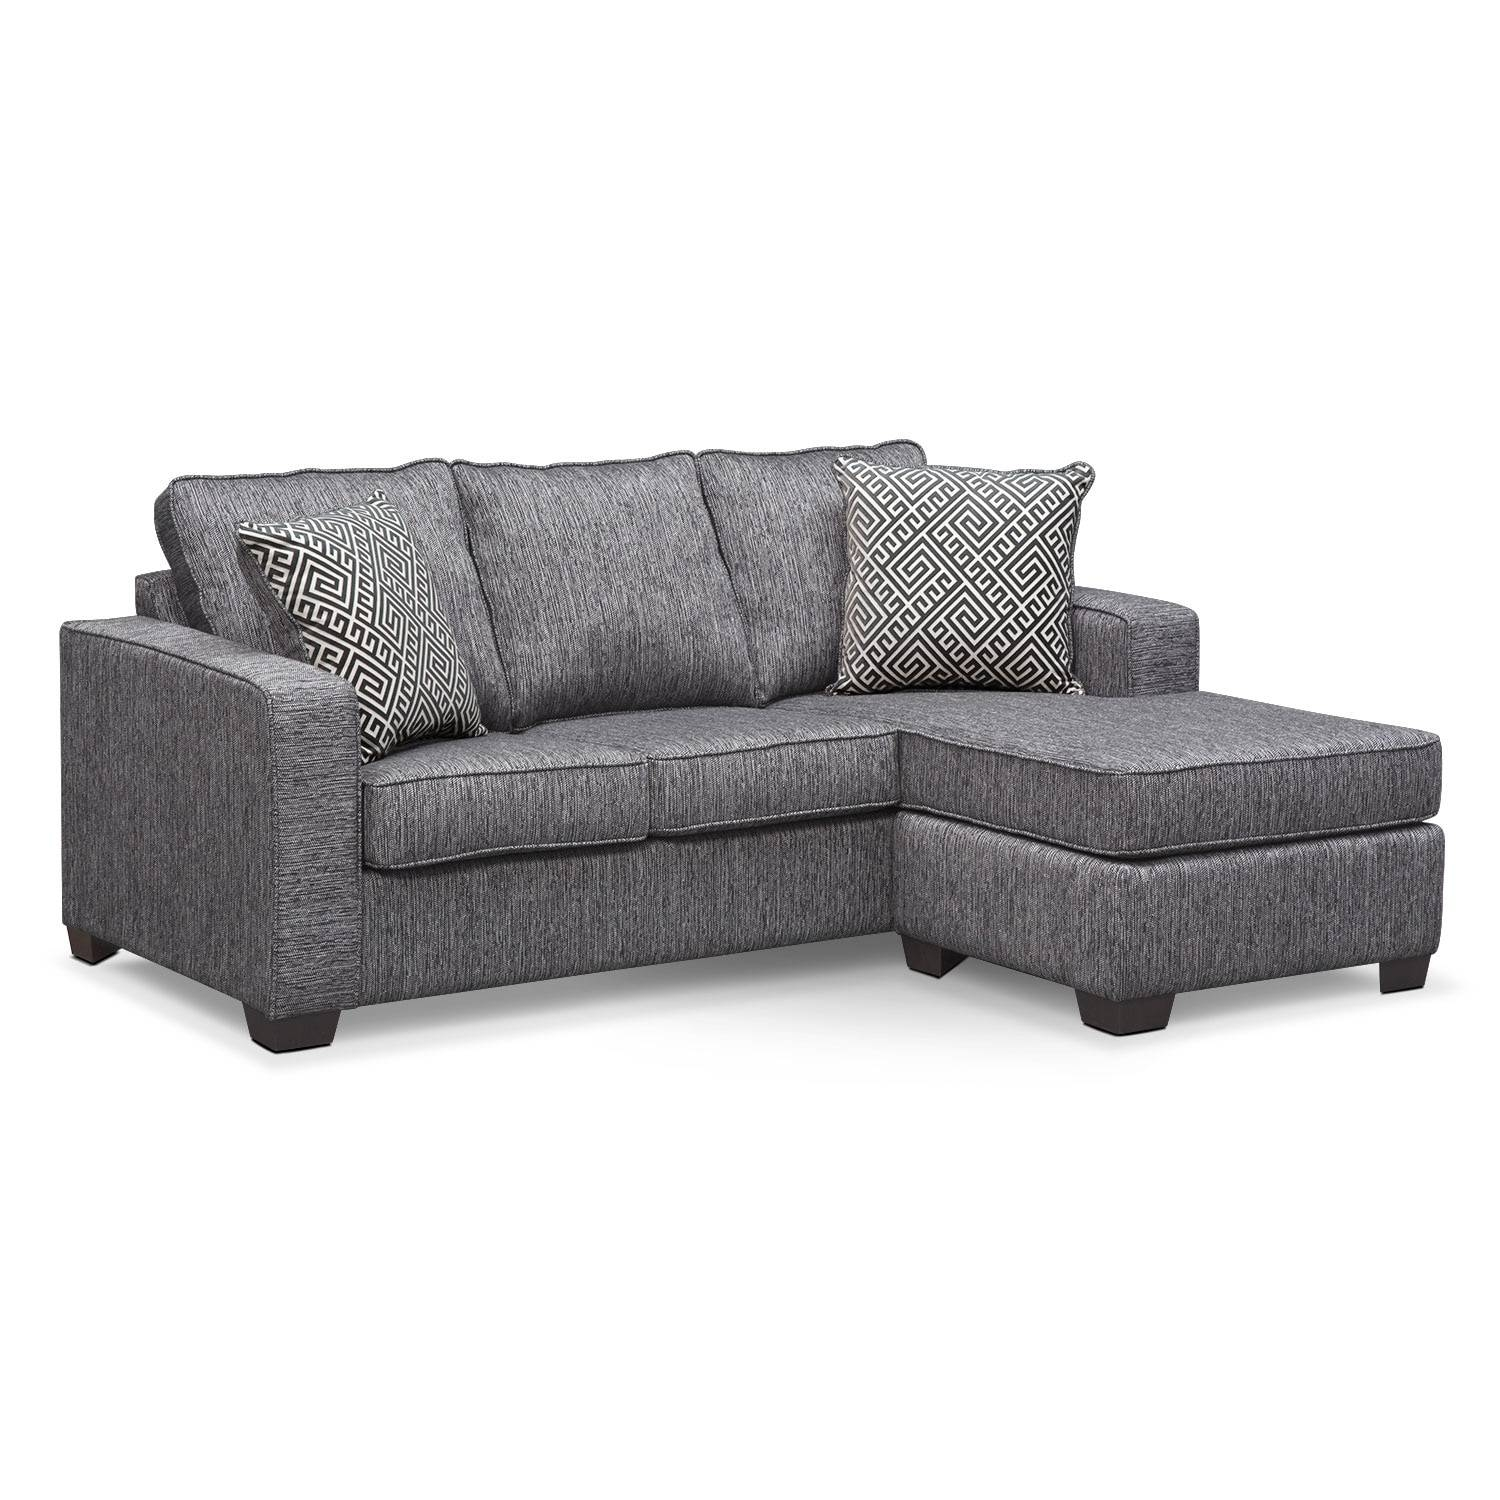 Sleeper Sofas | Value City Furniture | Value City Furniture pertaining to Sofa Beds With Chaise Lounge (Image 9 of 15)